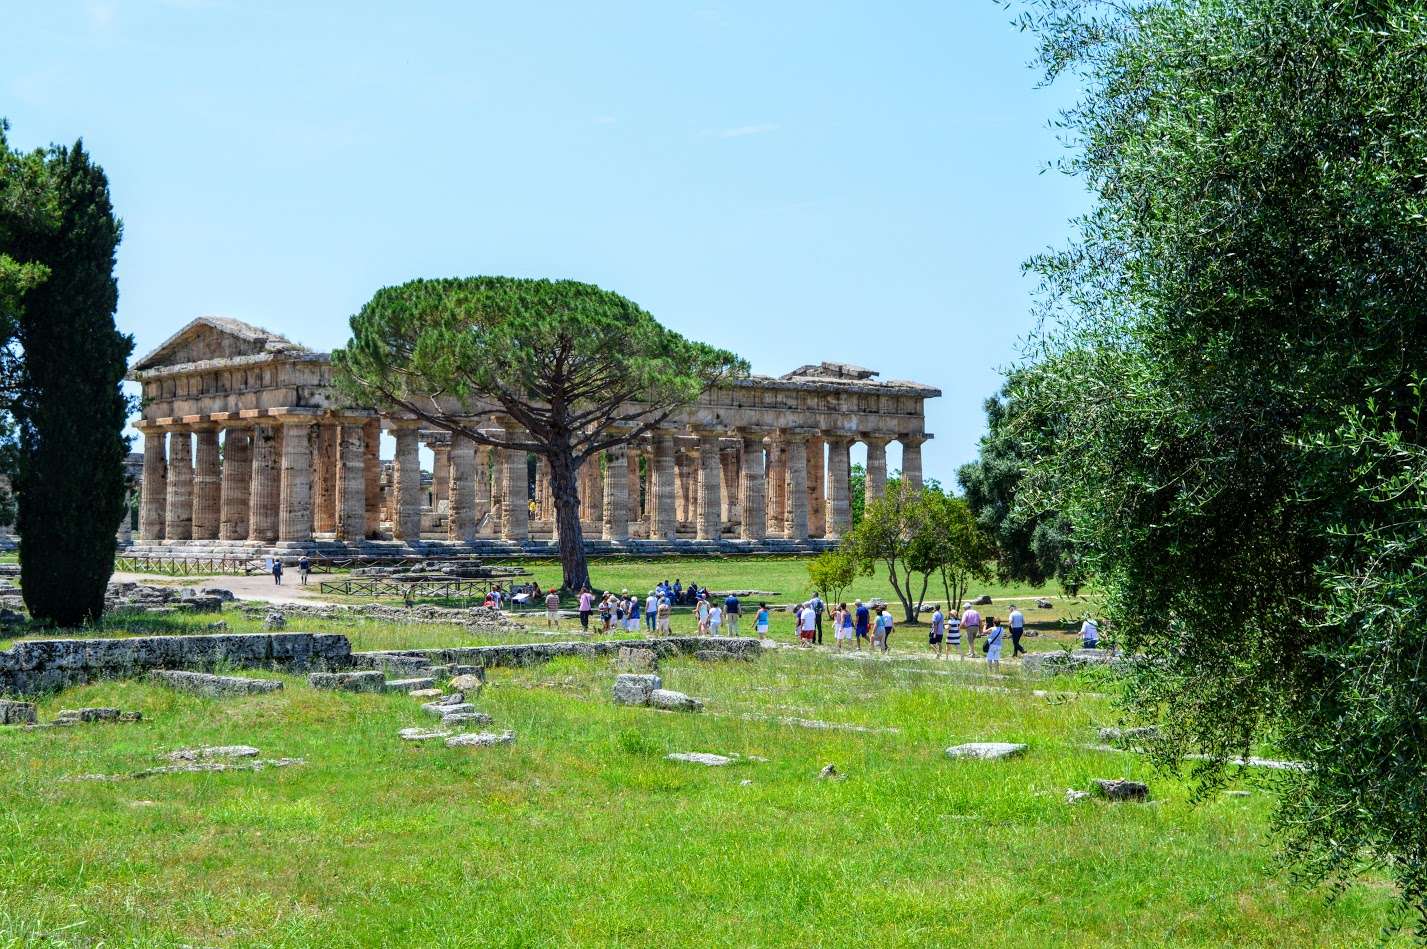 Paestum - an ancient Greek city lost for thousands of years.